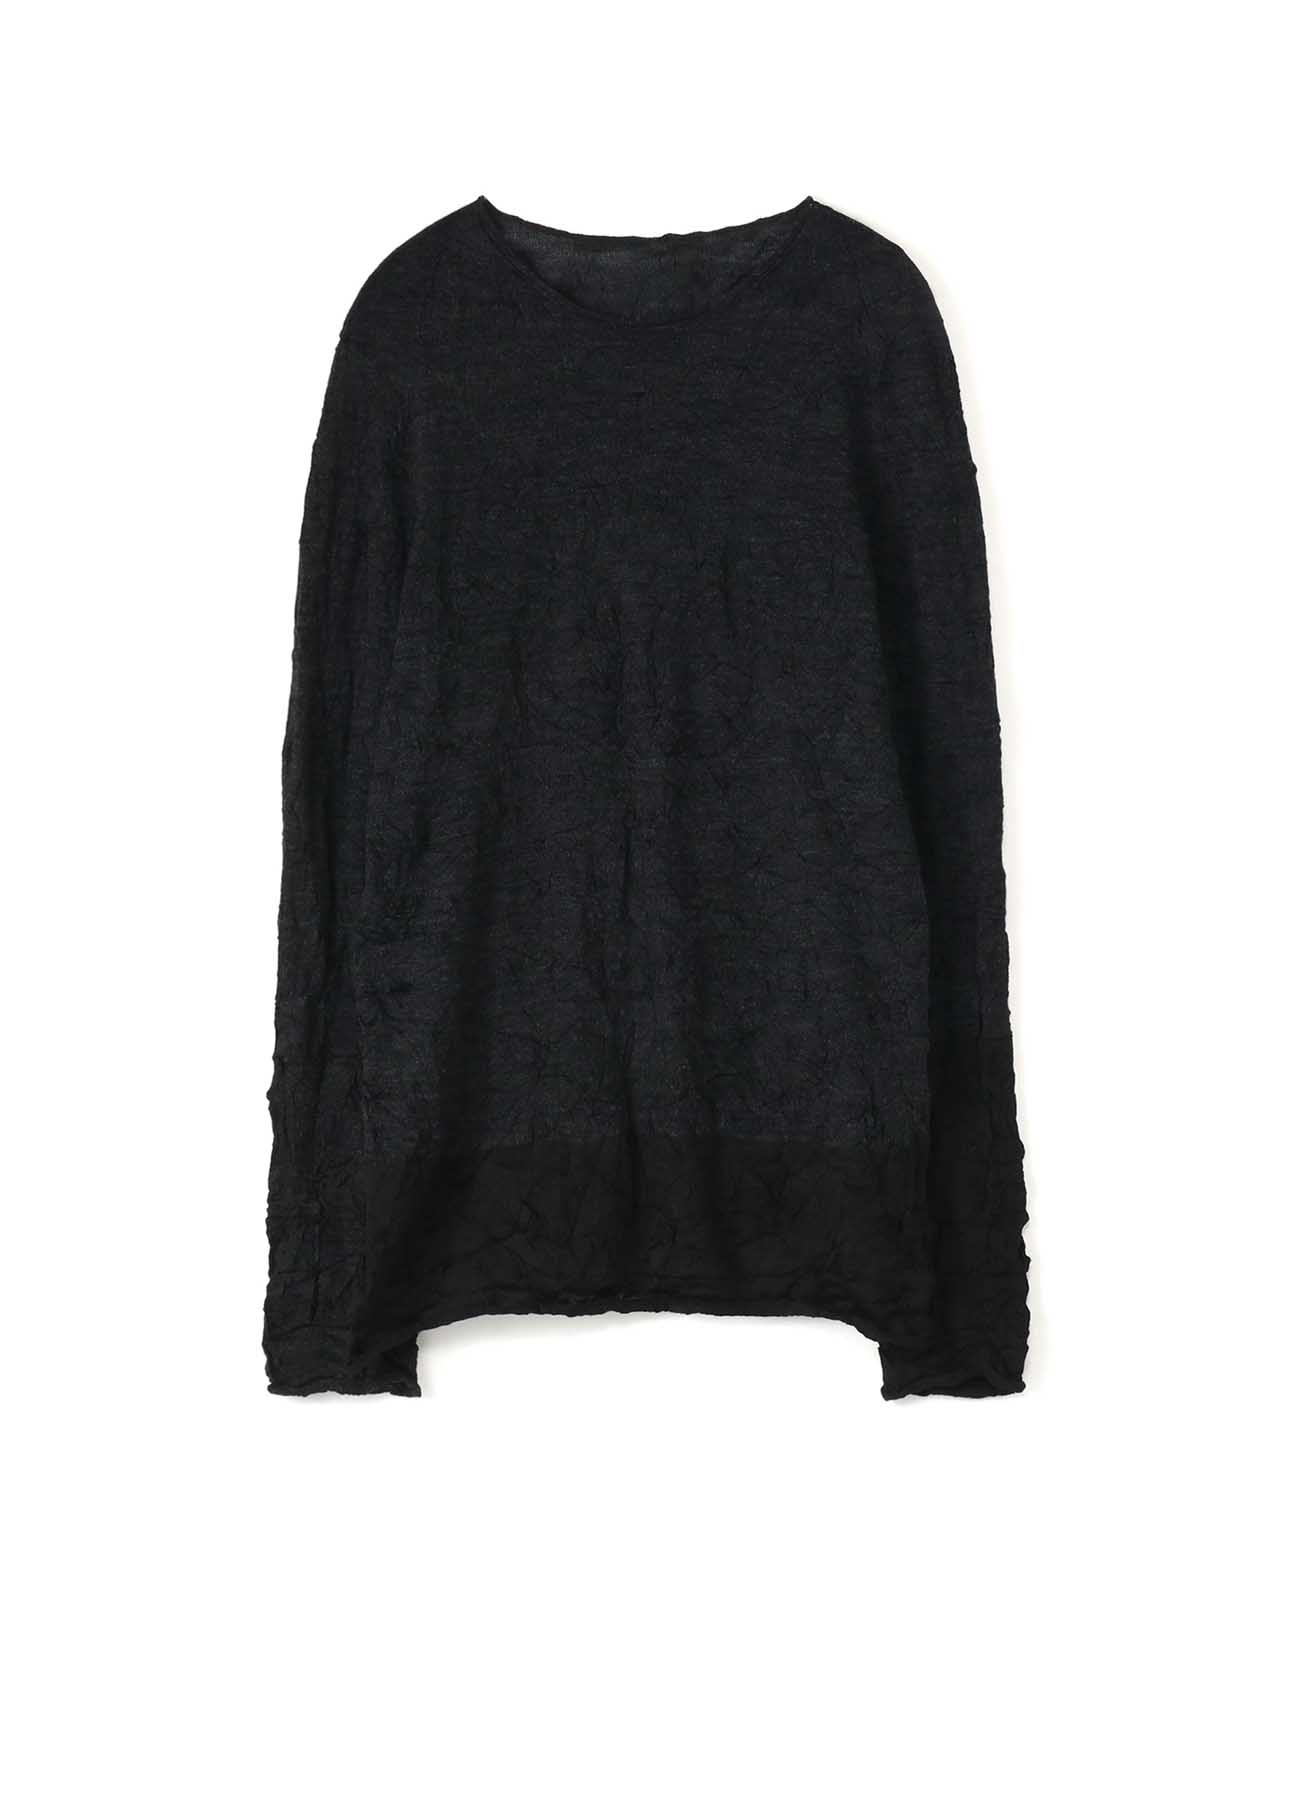 LINKS WRINKLE ROUND NECK LONG SLEEVE PULLOVER